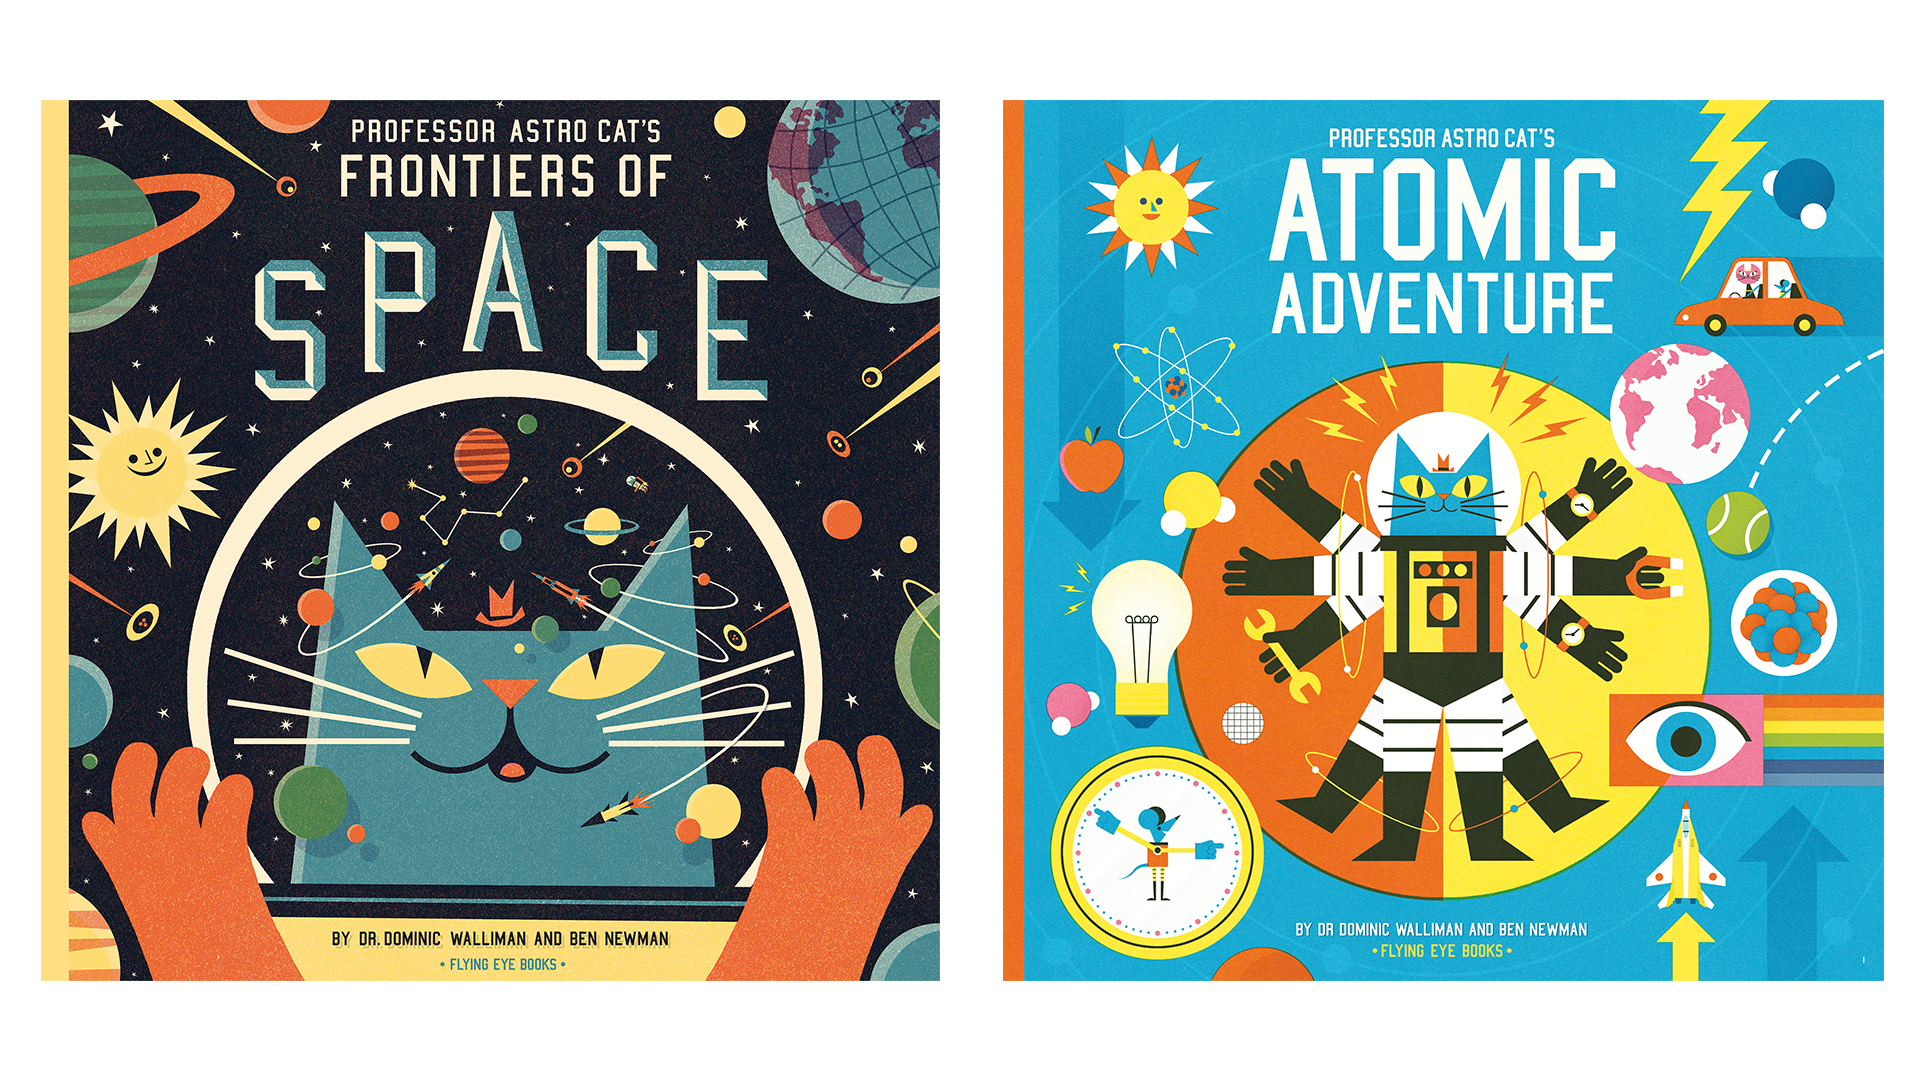 Professor Astro Cat books covers